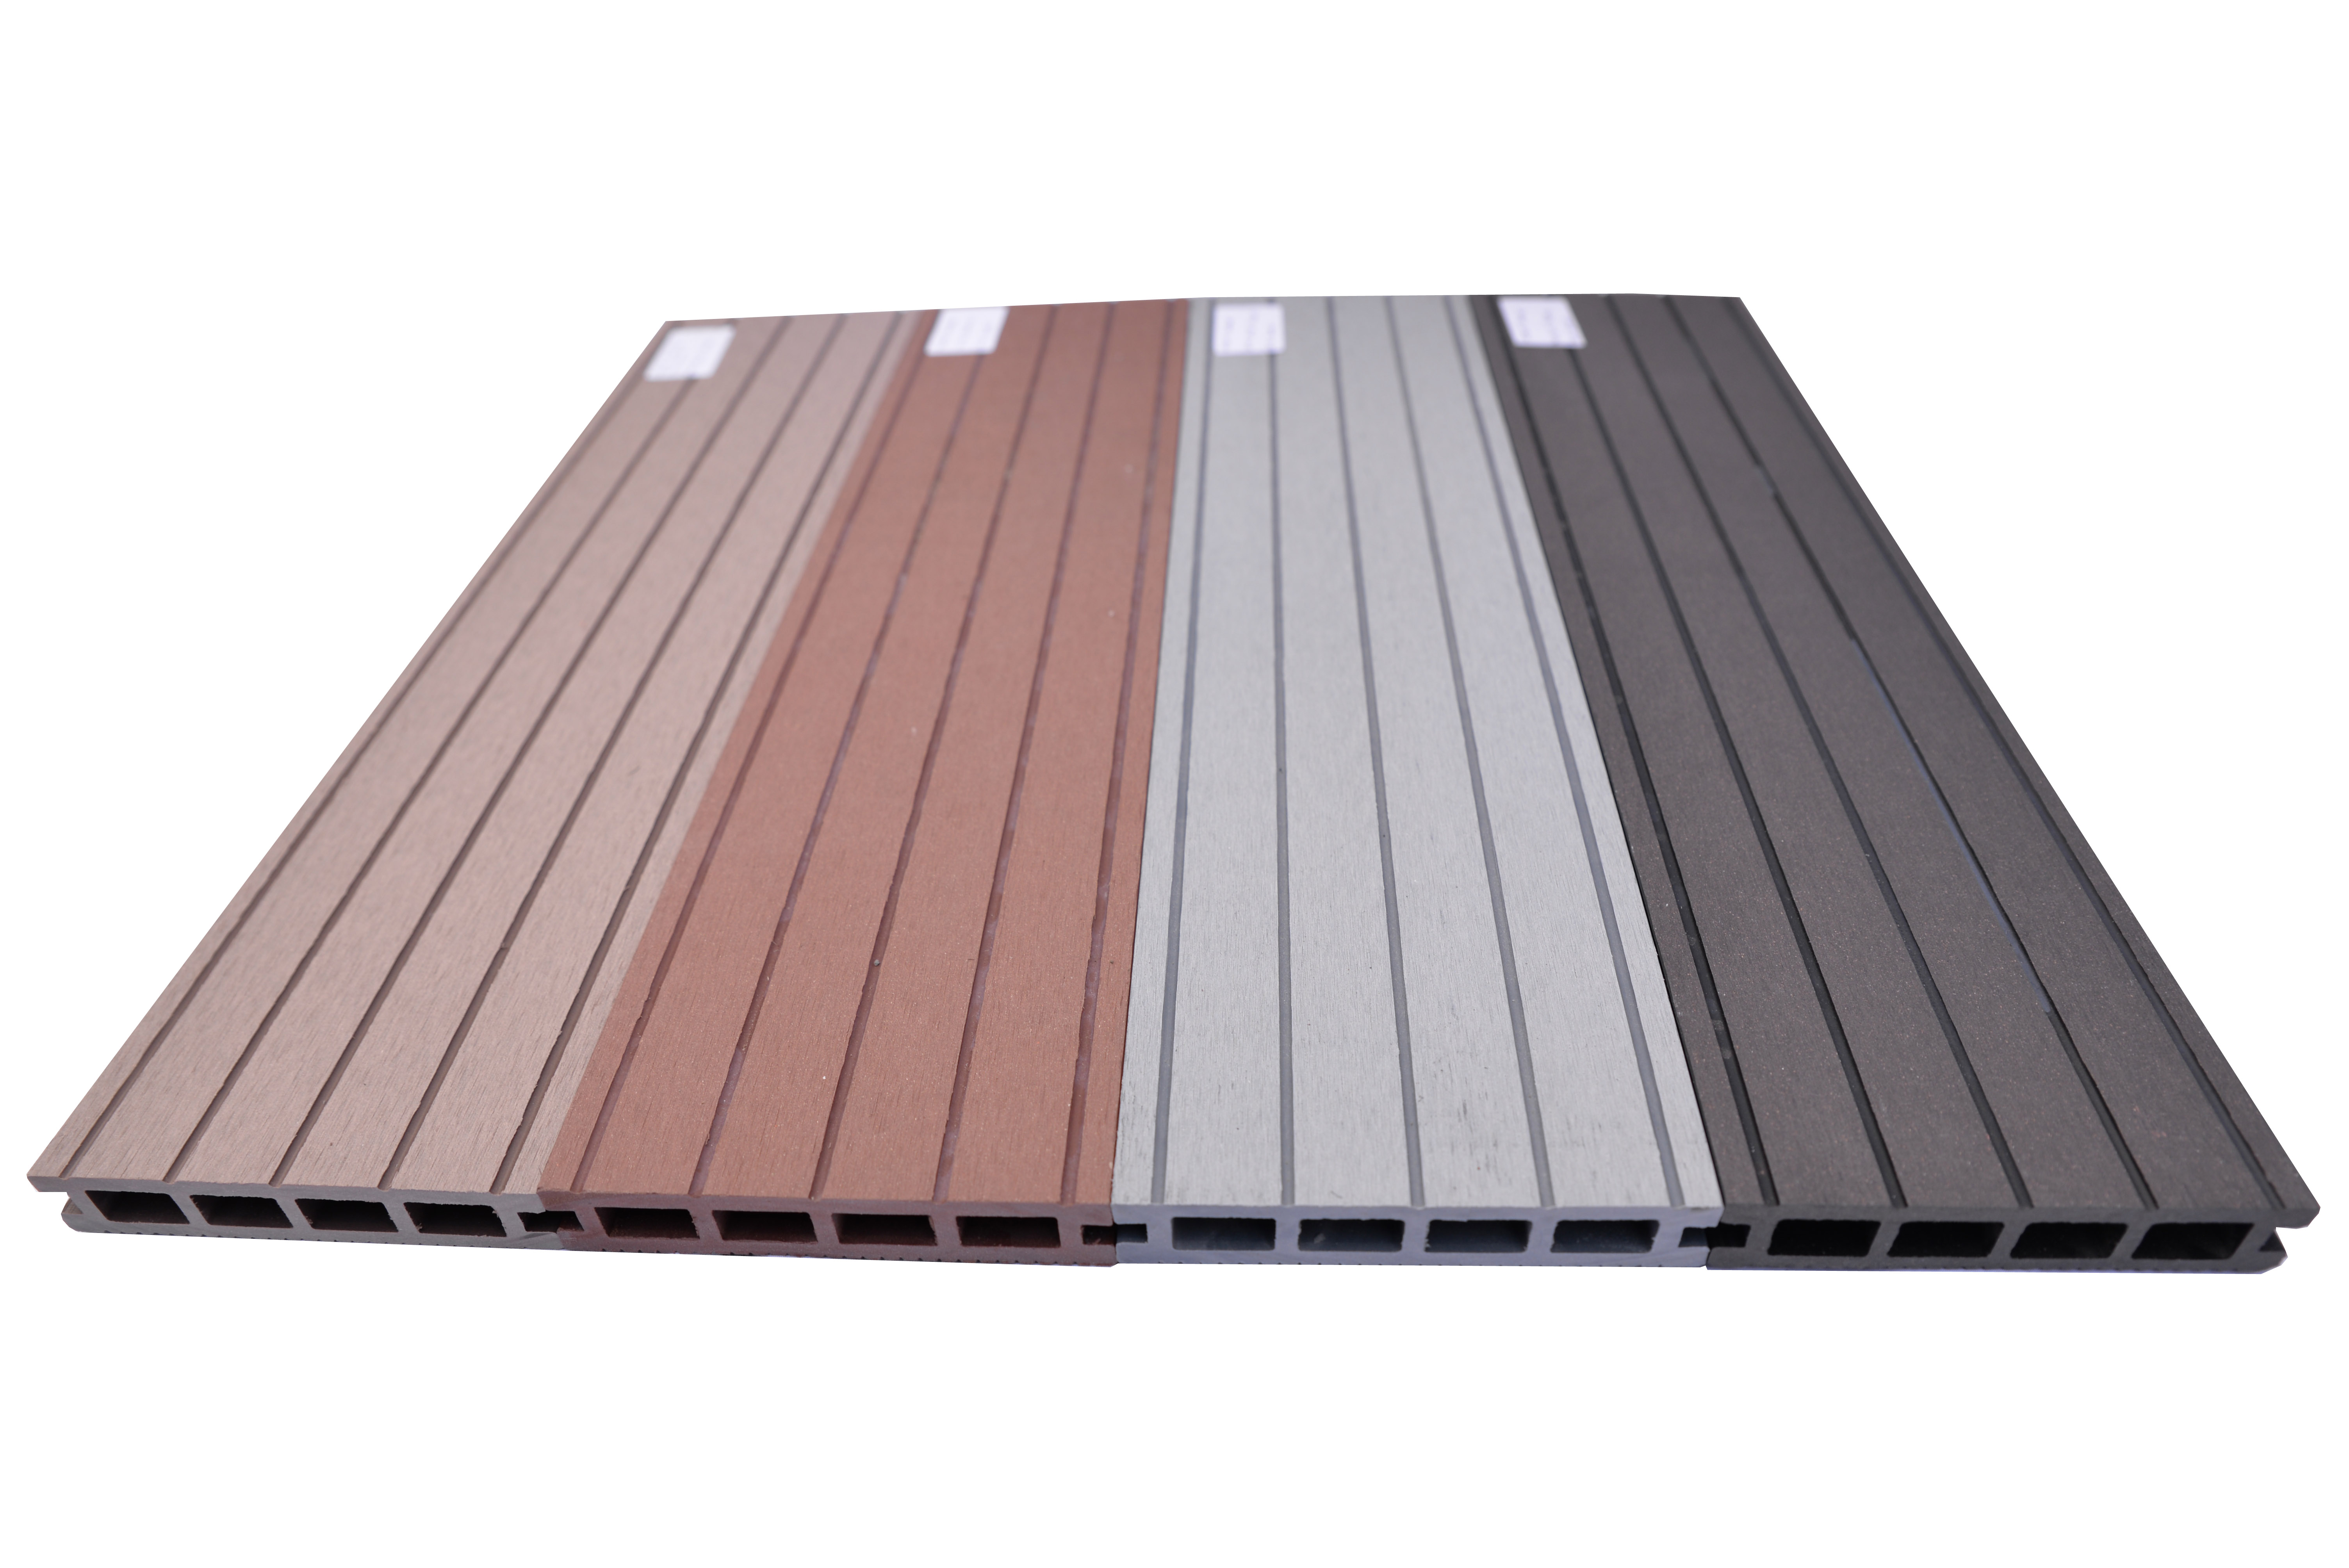 Brown composite decking and fencing paving traders for Composite decking reviews